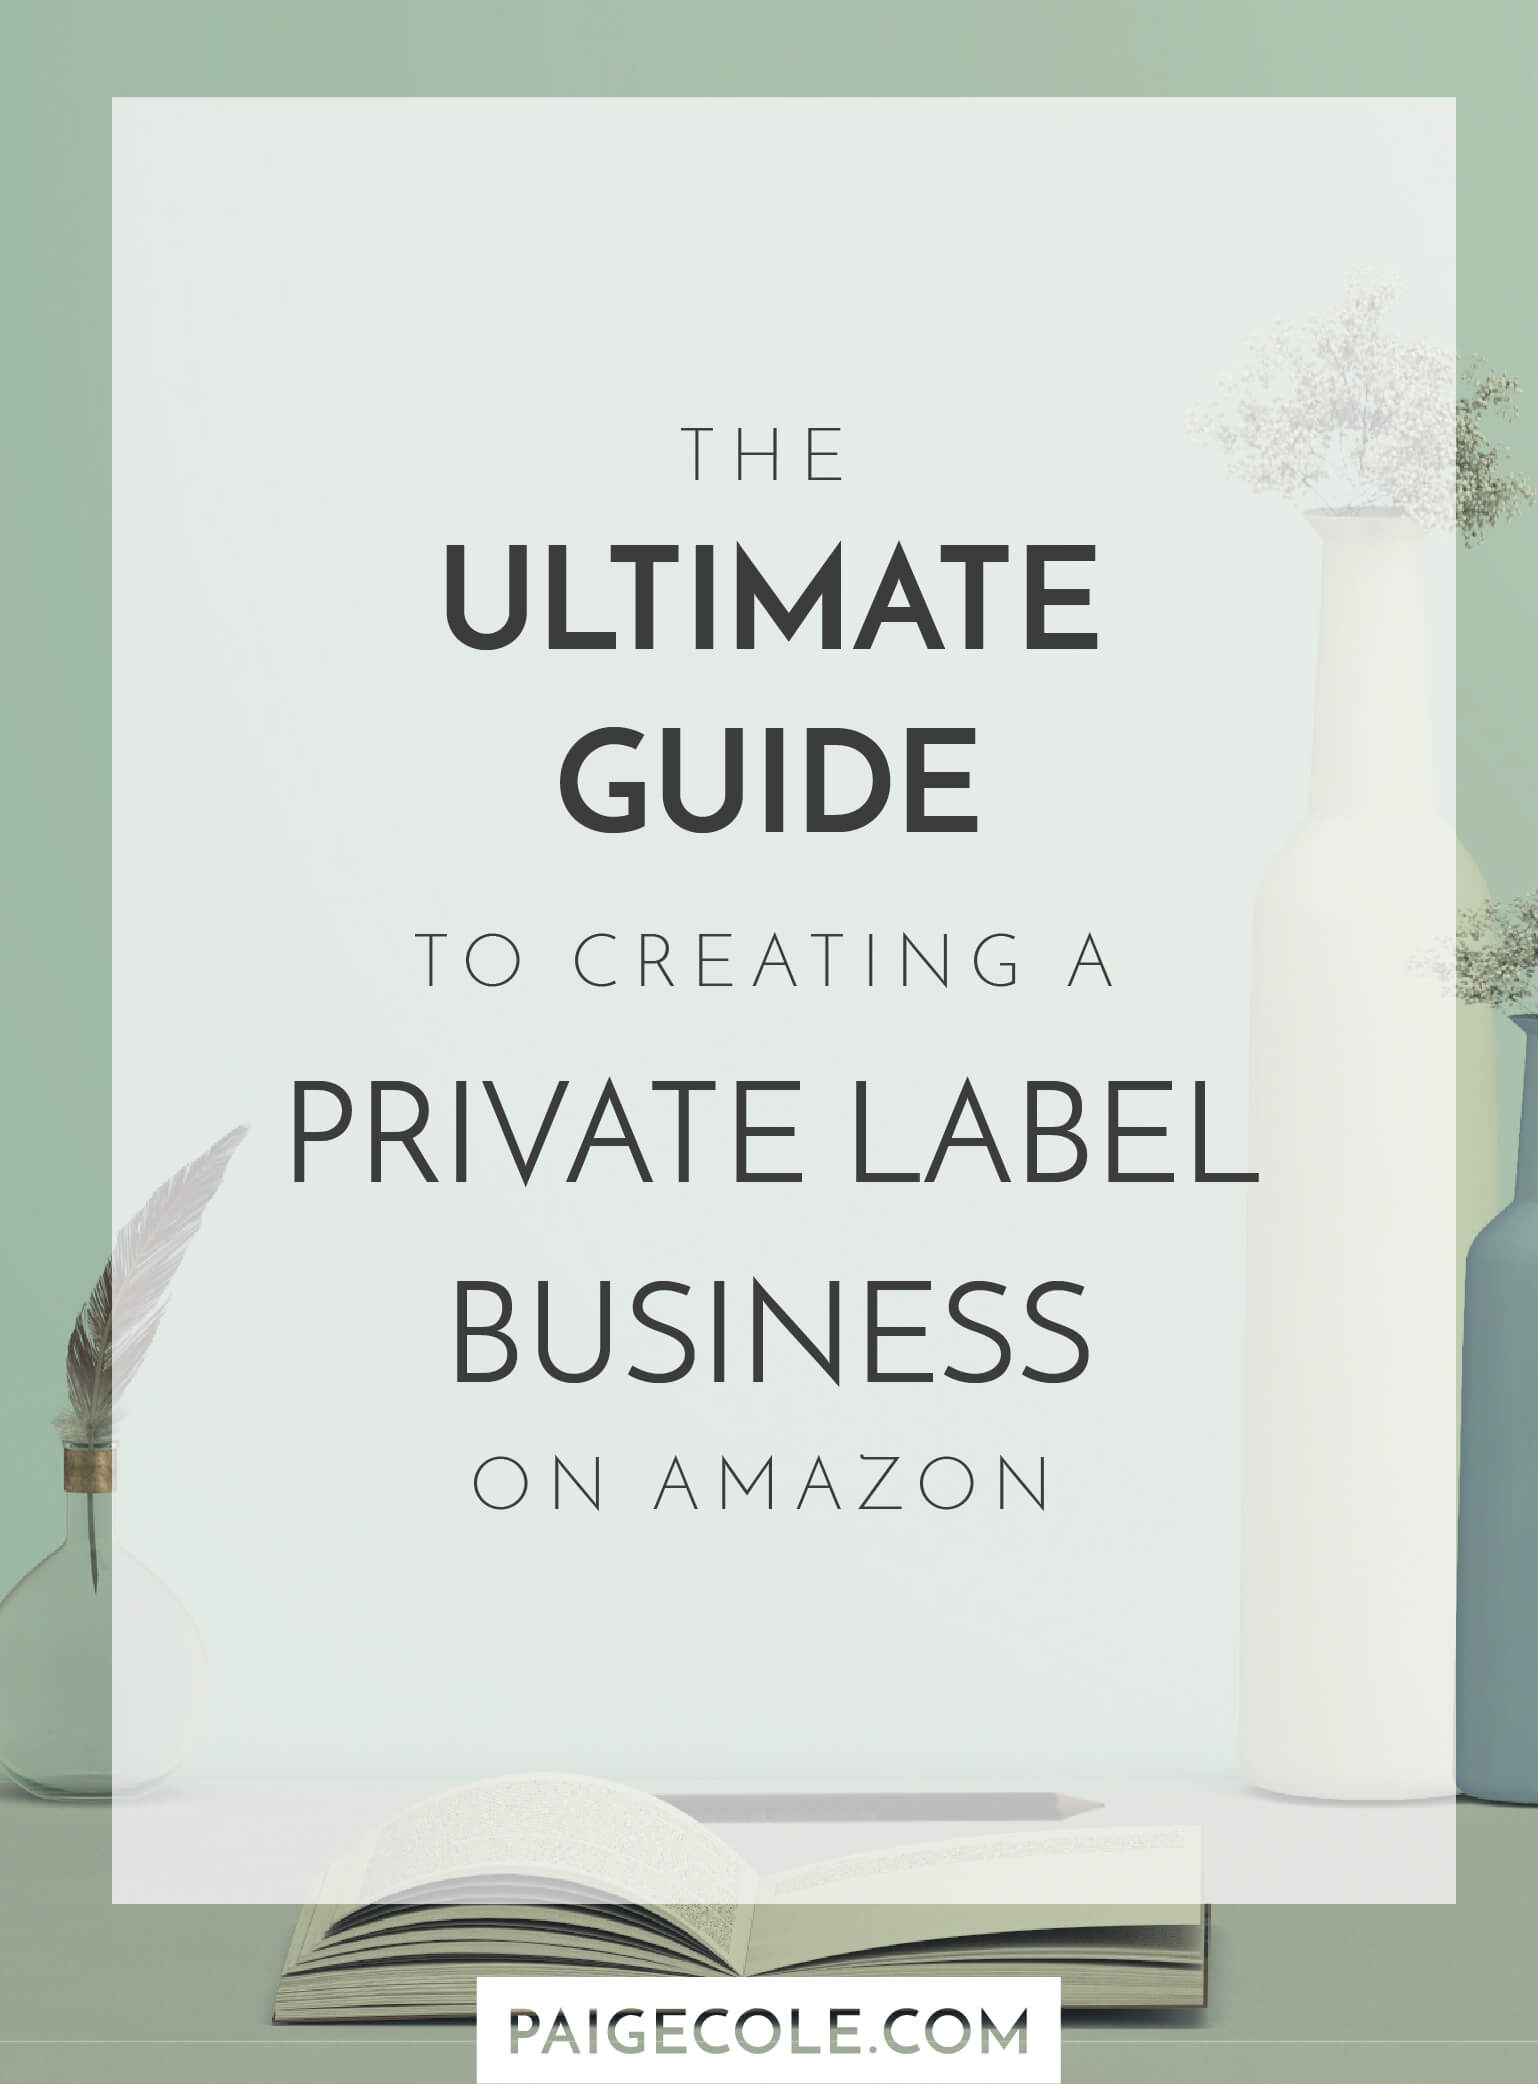 Ultimate-guide-creating-Private-label-business-amazon-paige-cole-pinterest.jpg